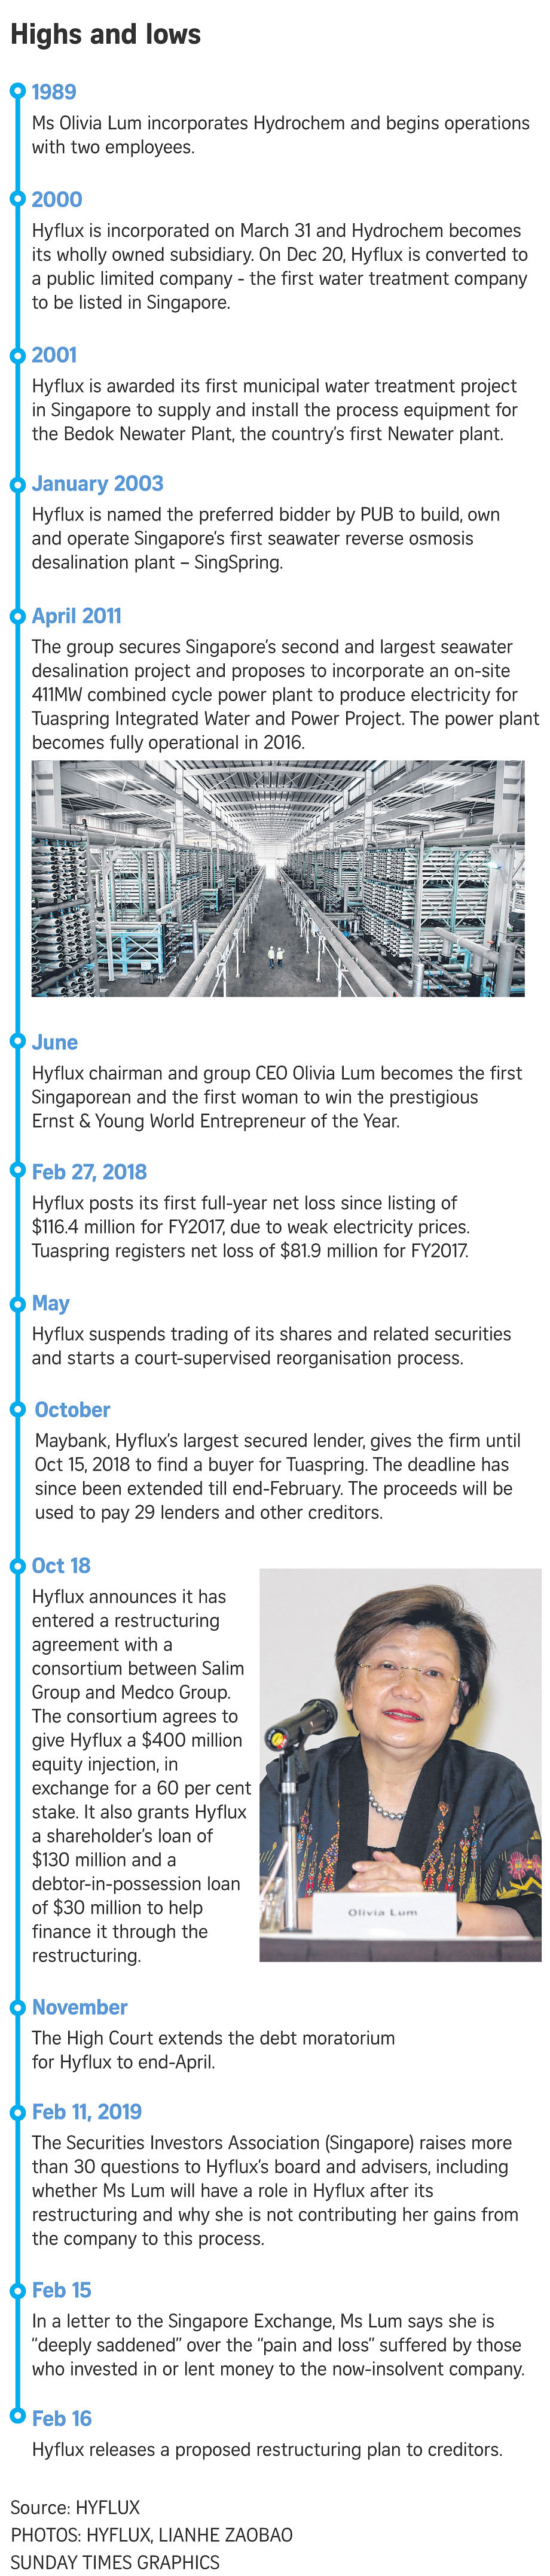 Hyflux reorganisation plan will see heavy losses for small